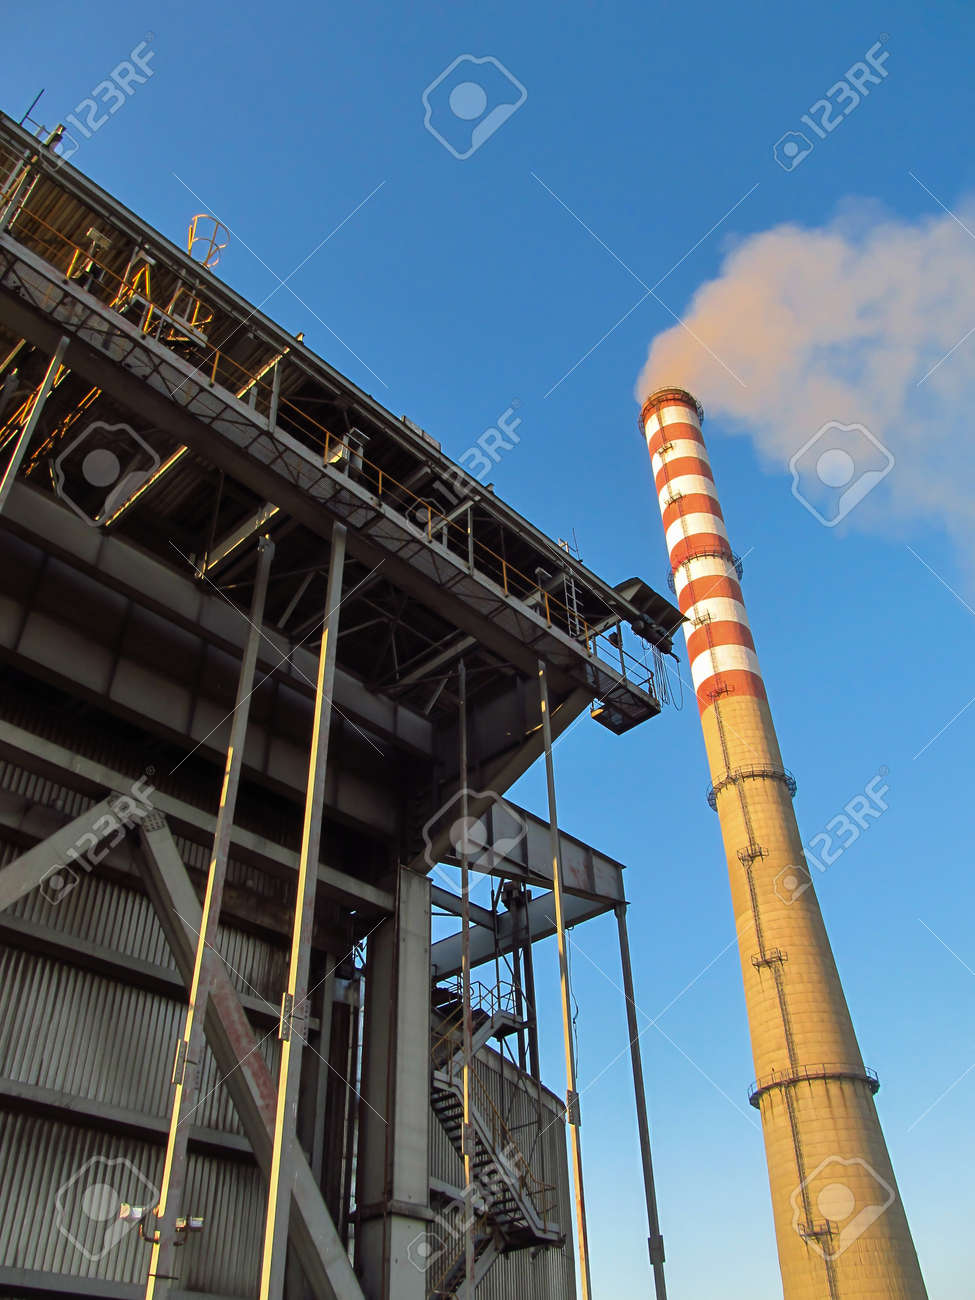 a tall, white and red chimney and a fragment of the power plant building - 157852224